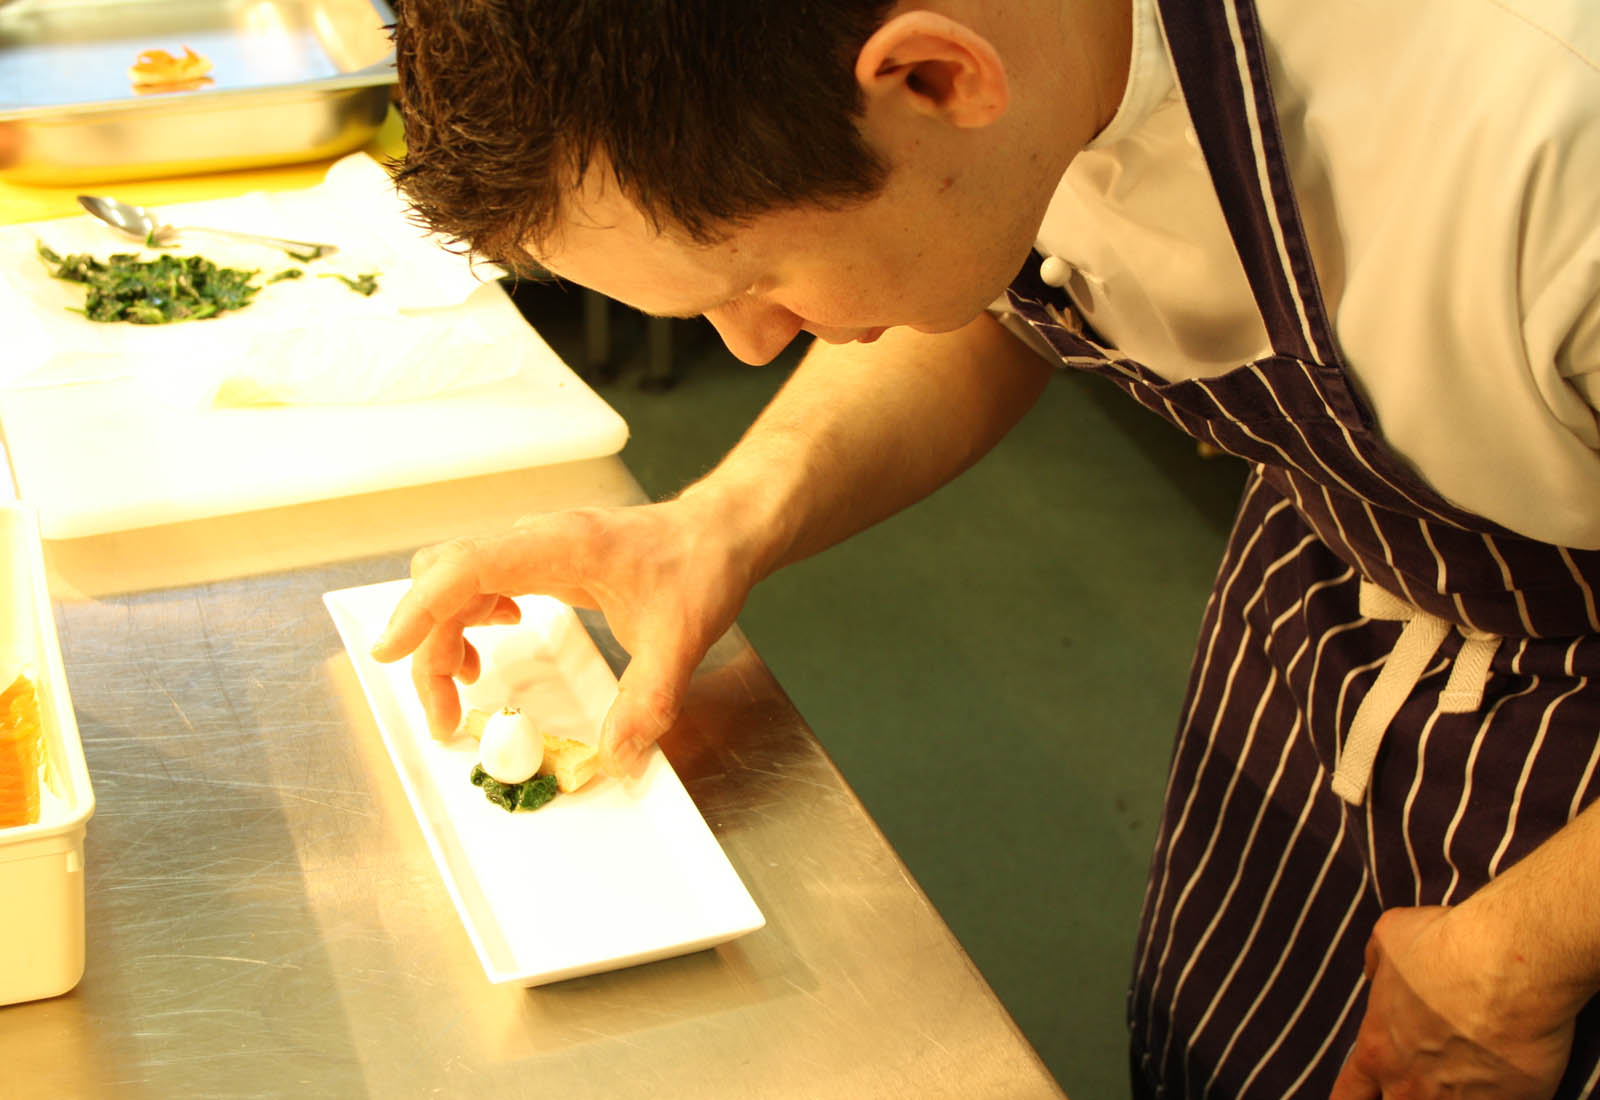 Tom Beauchamp, head chef